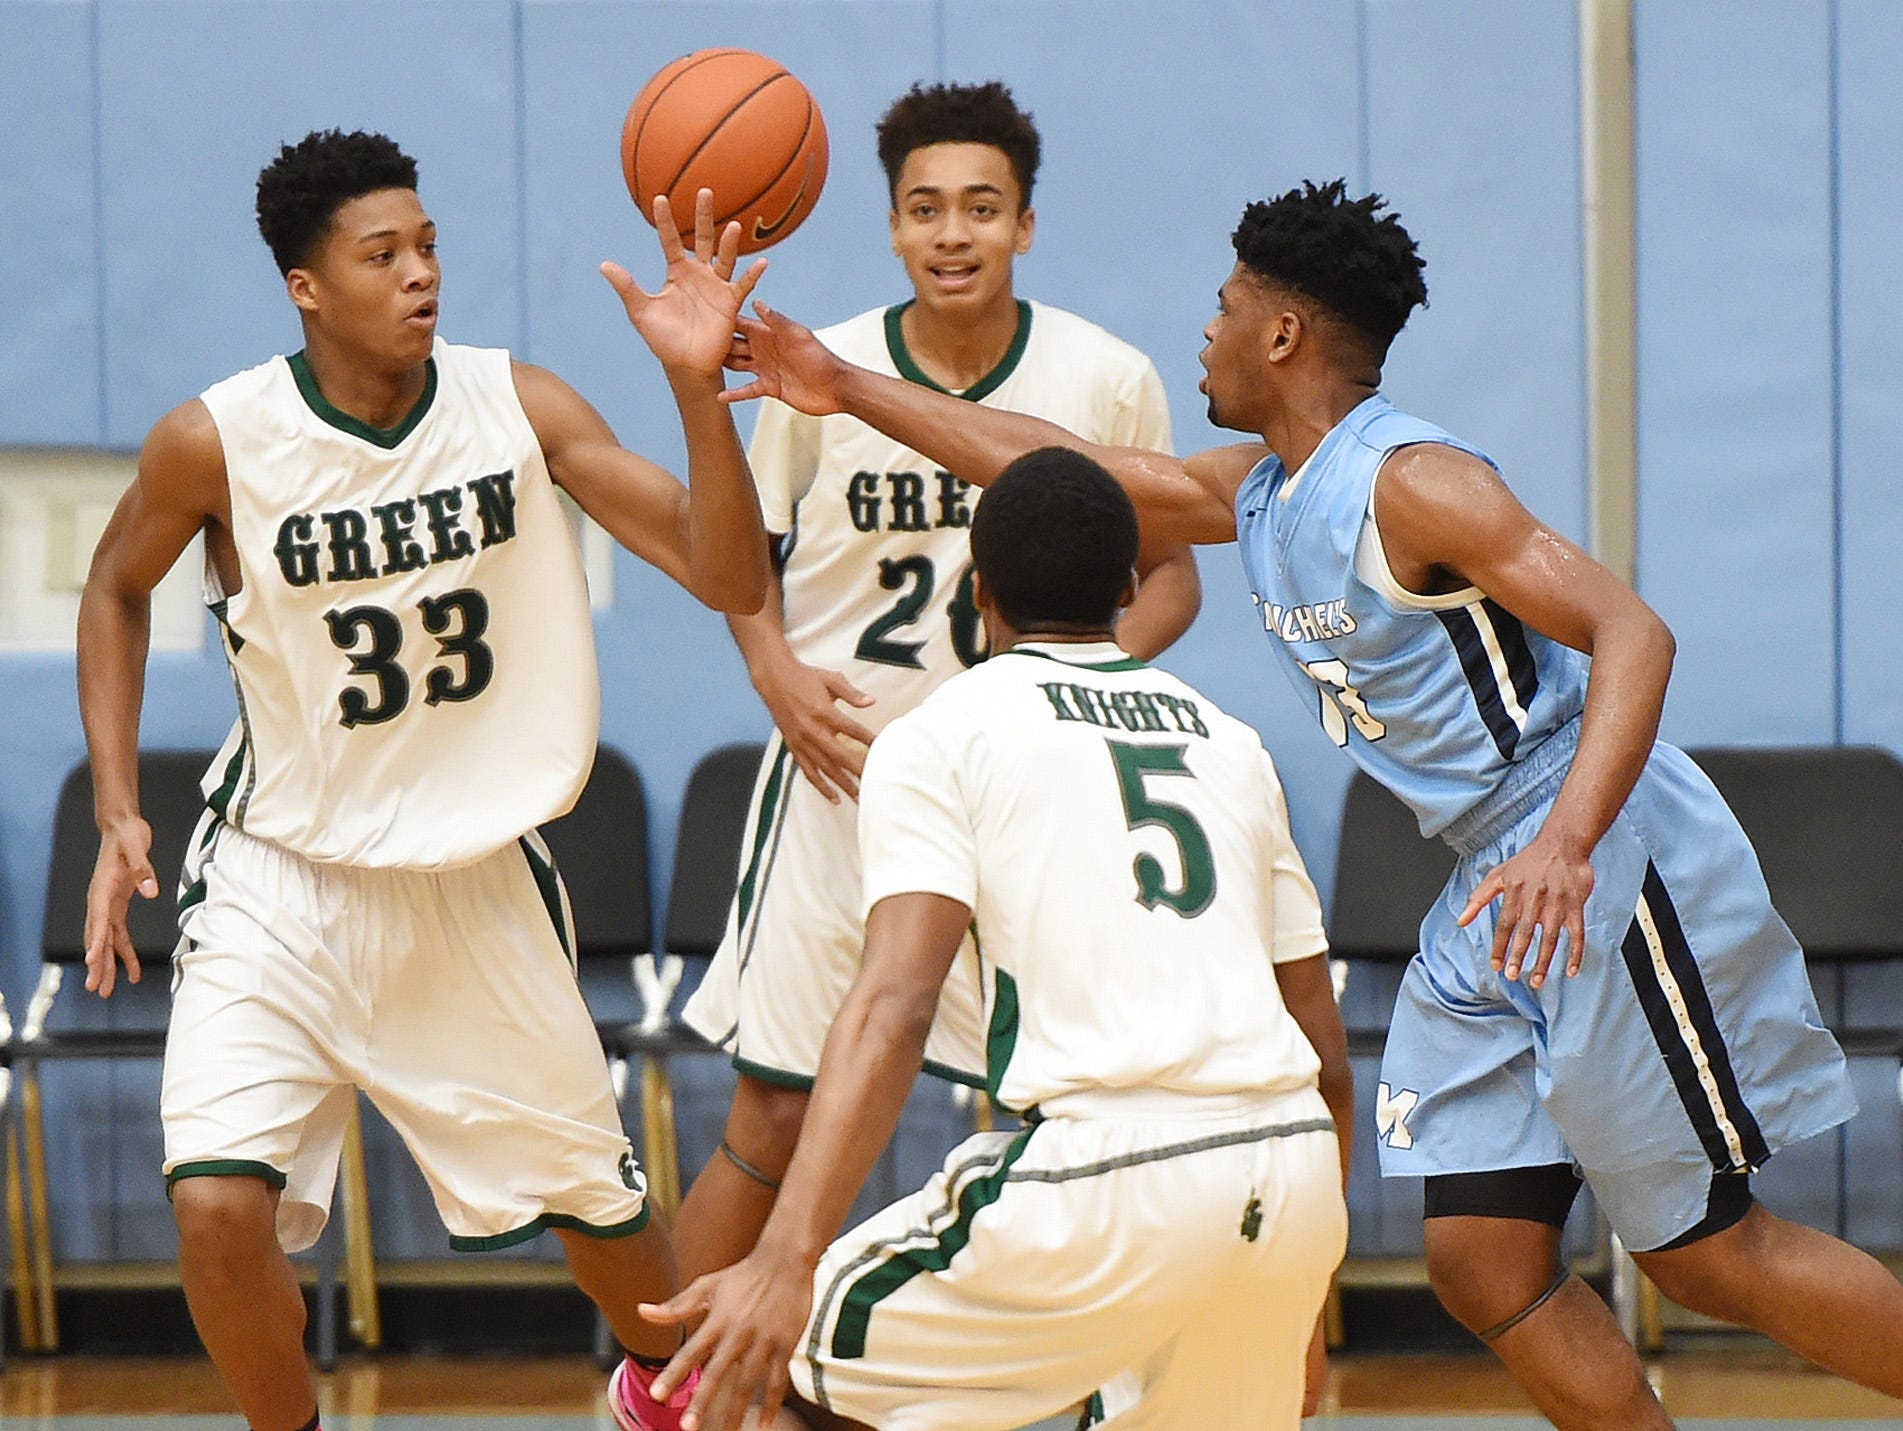 Mount Pleasant HS (white) defeated St. Michael's College School from Toronto, Ontario in the opening game on Thursday December 29th at the Slam Dunk to the Beach, held at Cape Henlopen HS near Lewes.